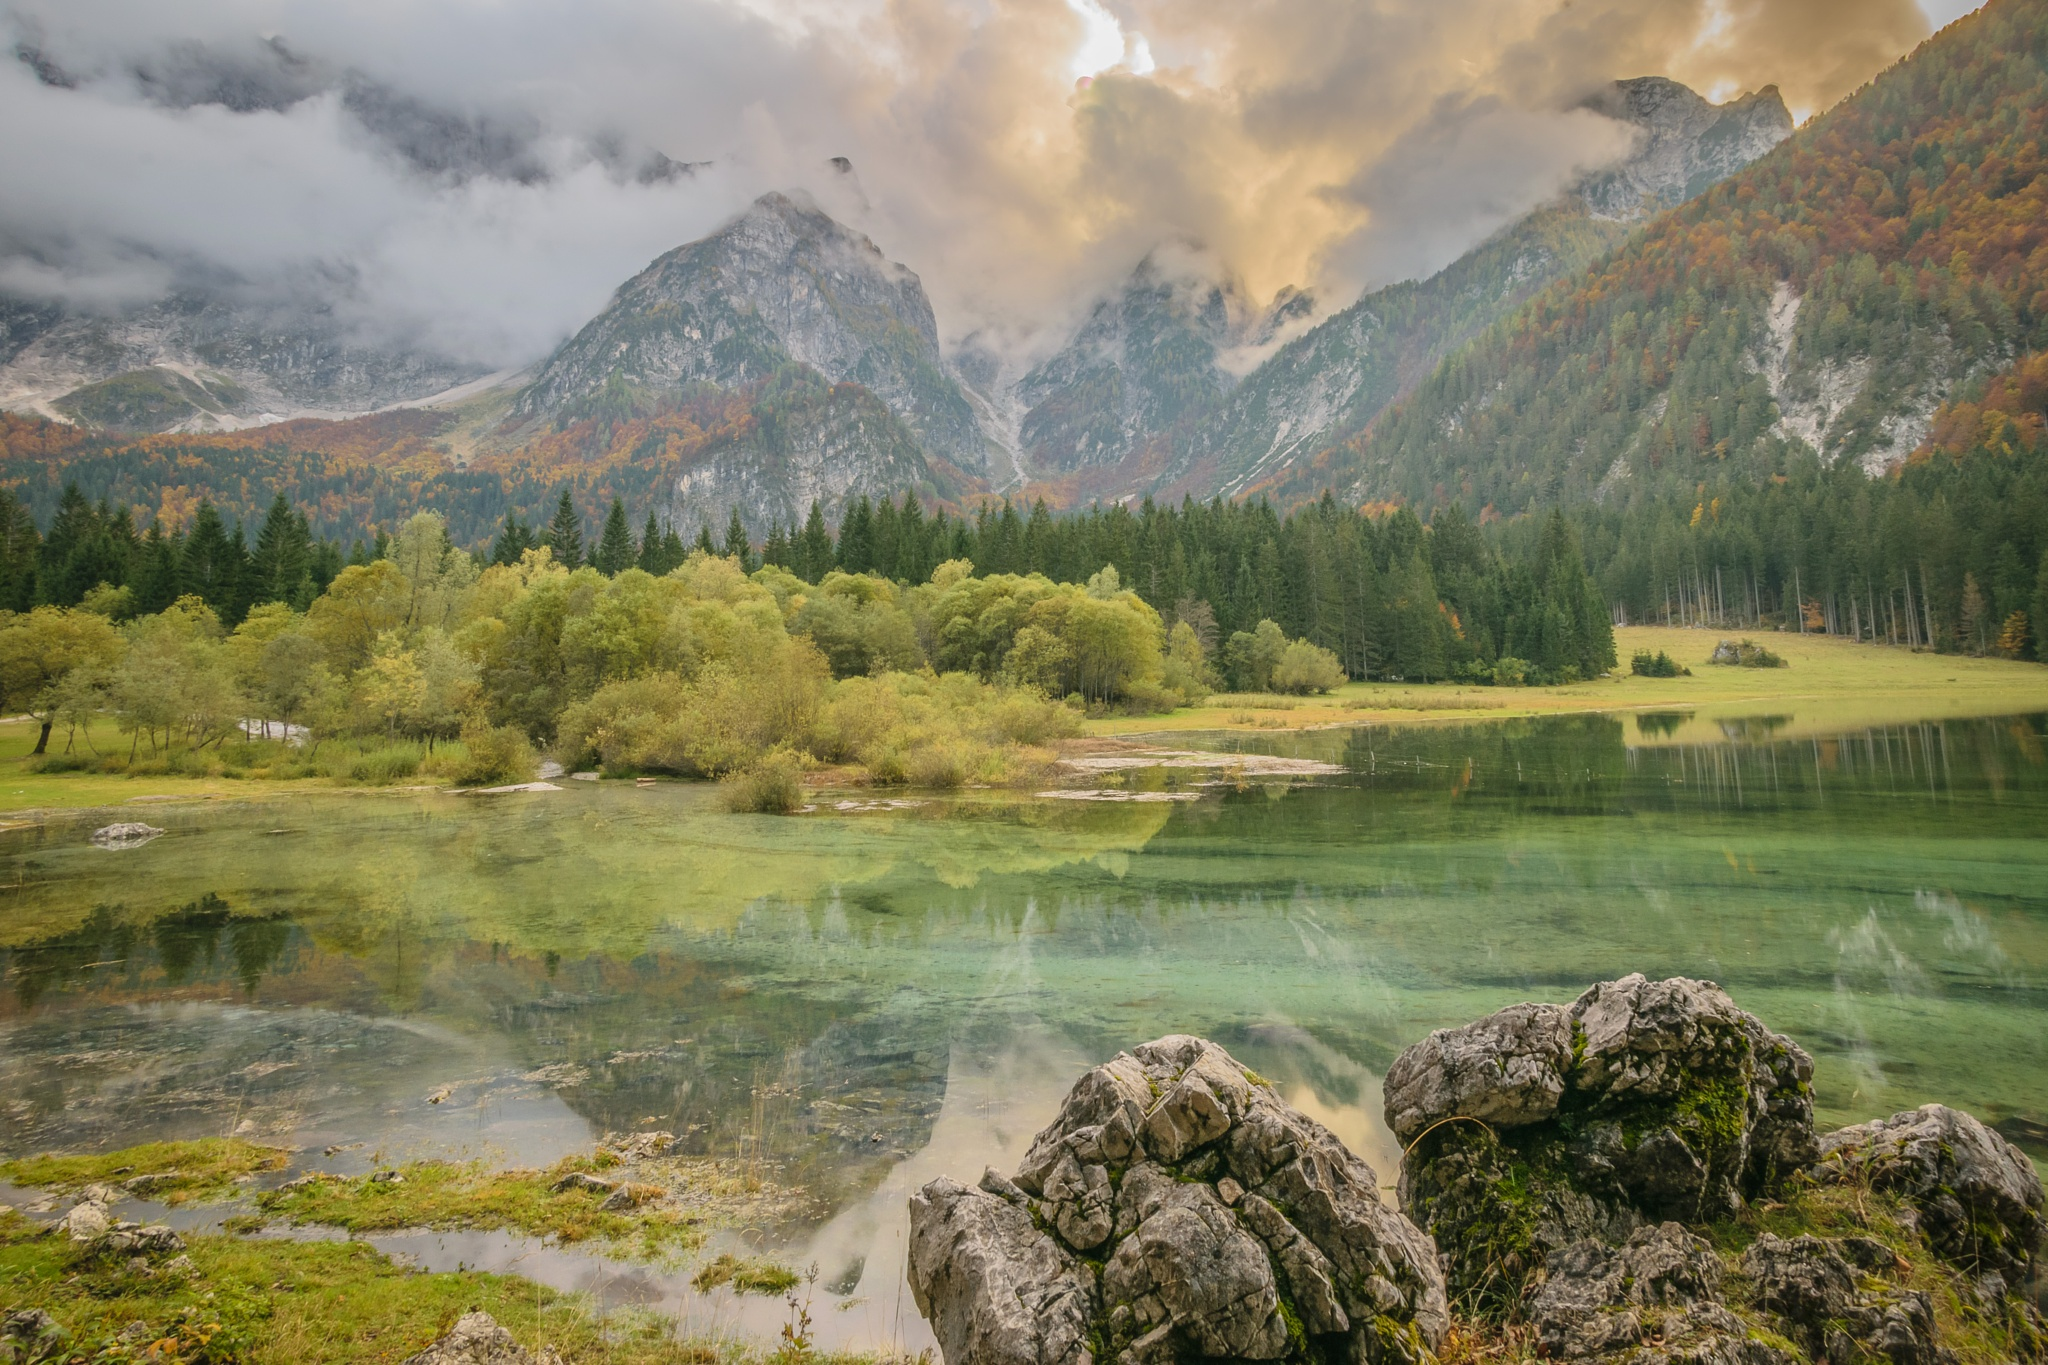 Misty mountains by the lake by Erik Smrekar